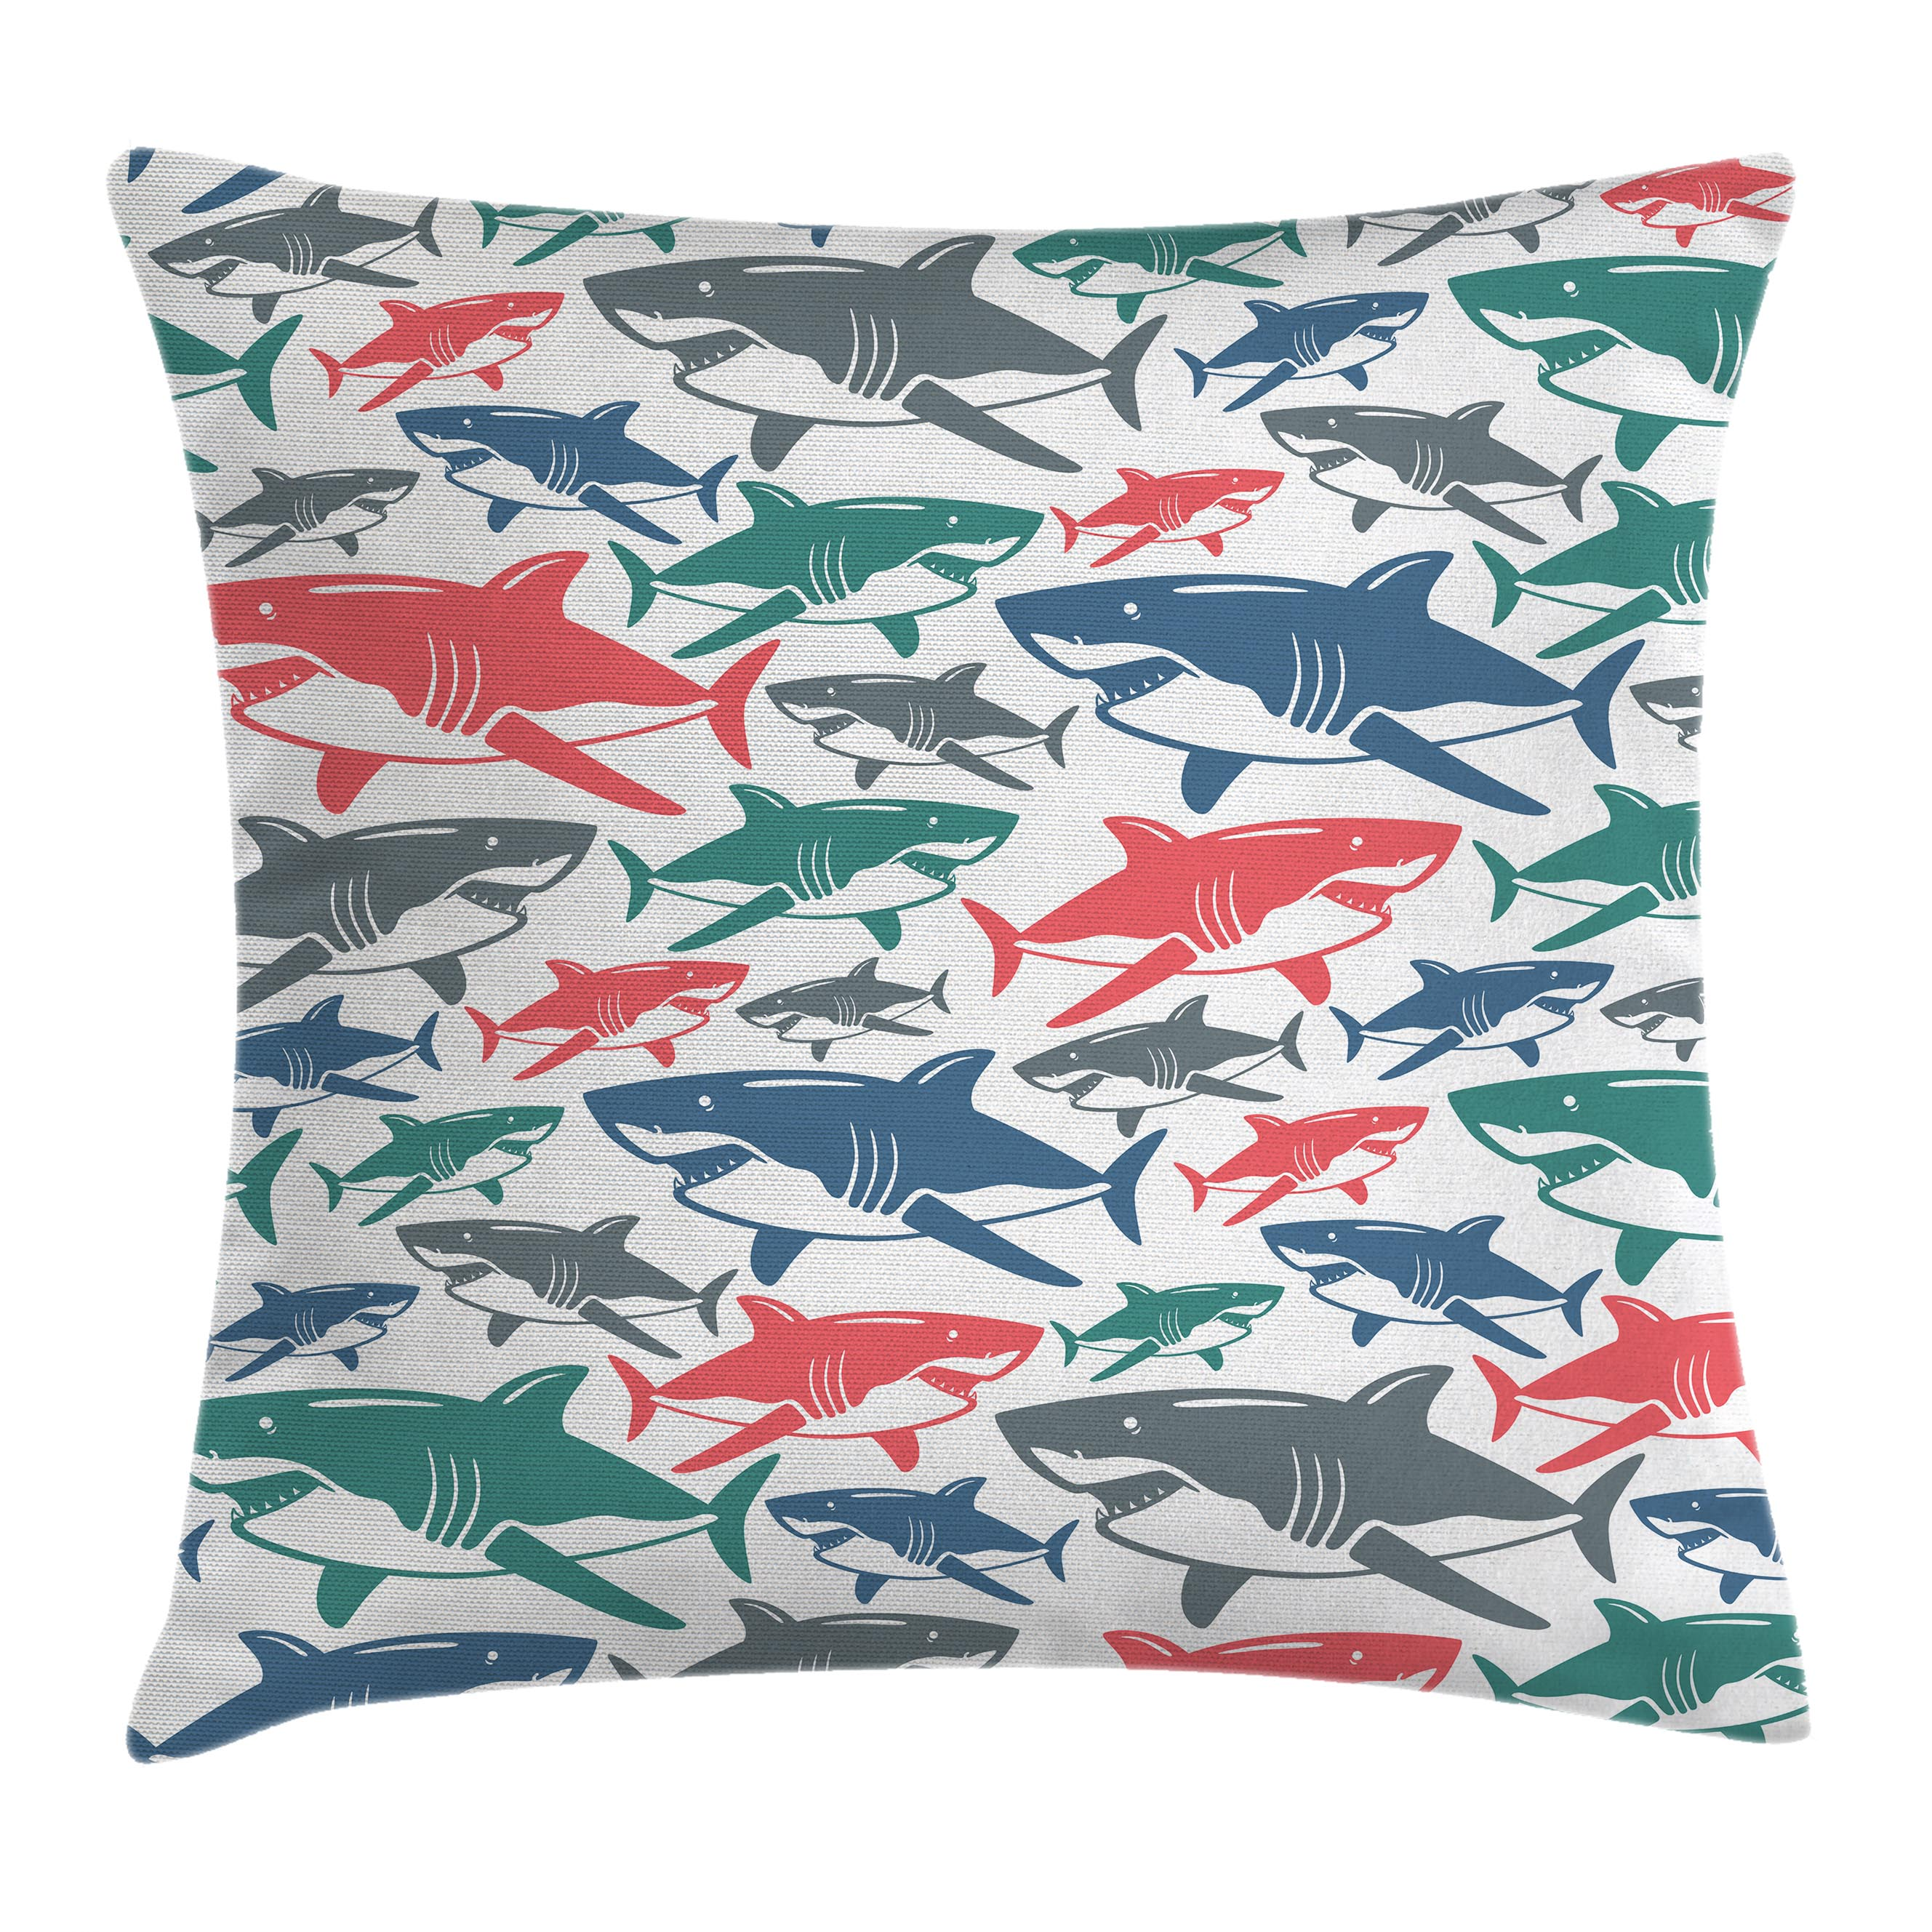 Sea Animal Decor Throw Pillow Cushion Cover, Mix of Colorful Bull Shark Family Pattern Masters of Survival Kids Nursery, Decorative Square Accent Pillow Case, 16 X 16 Inches, Multi, by Ambesonne